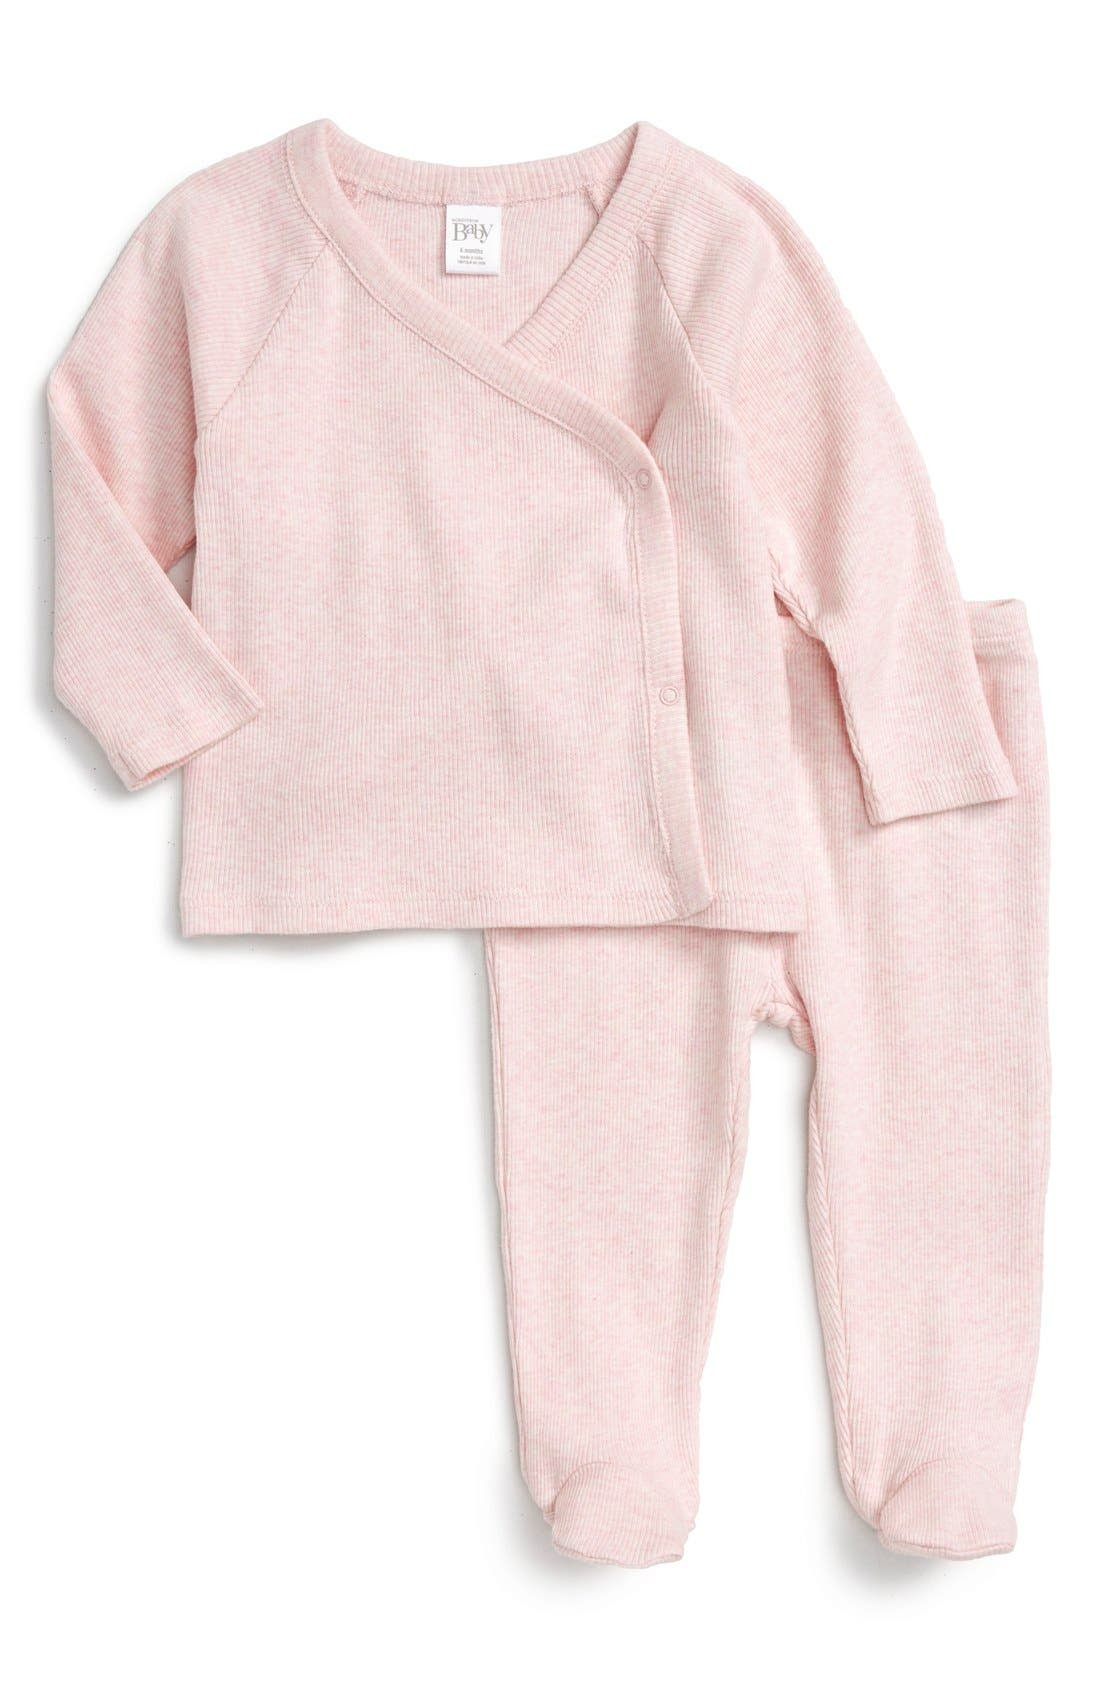 Wrap Top & Footed Pants Set,                         Main,                         color, Pink Baby Heather